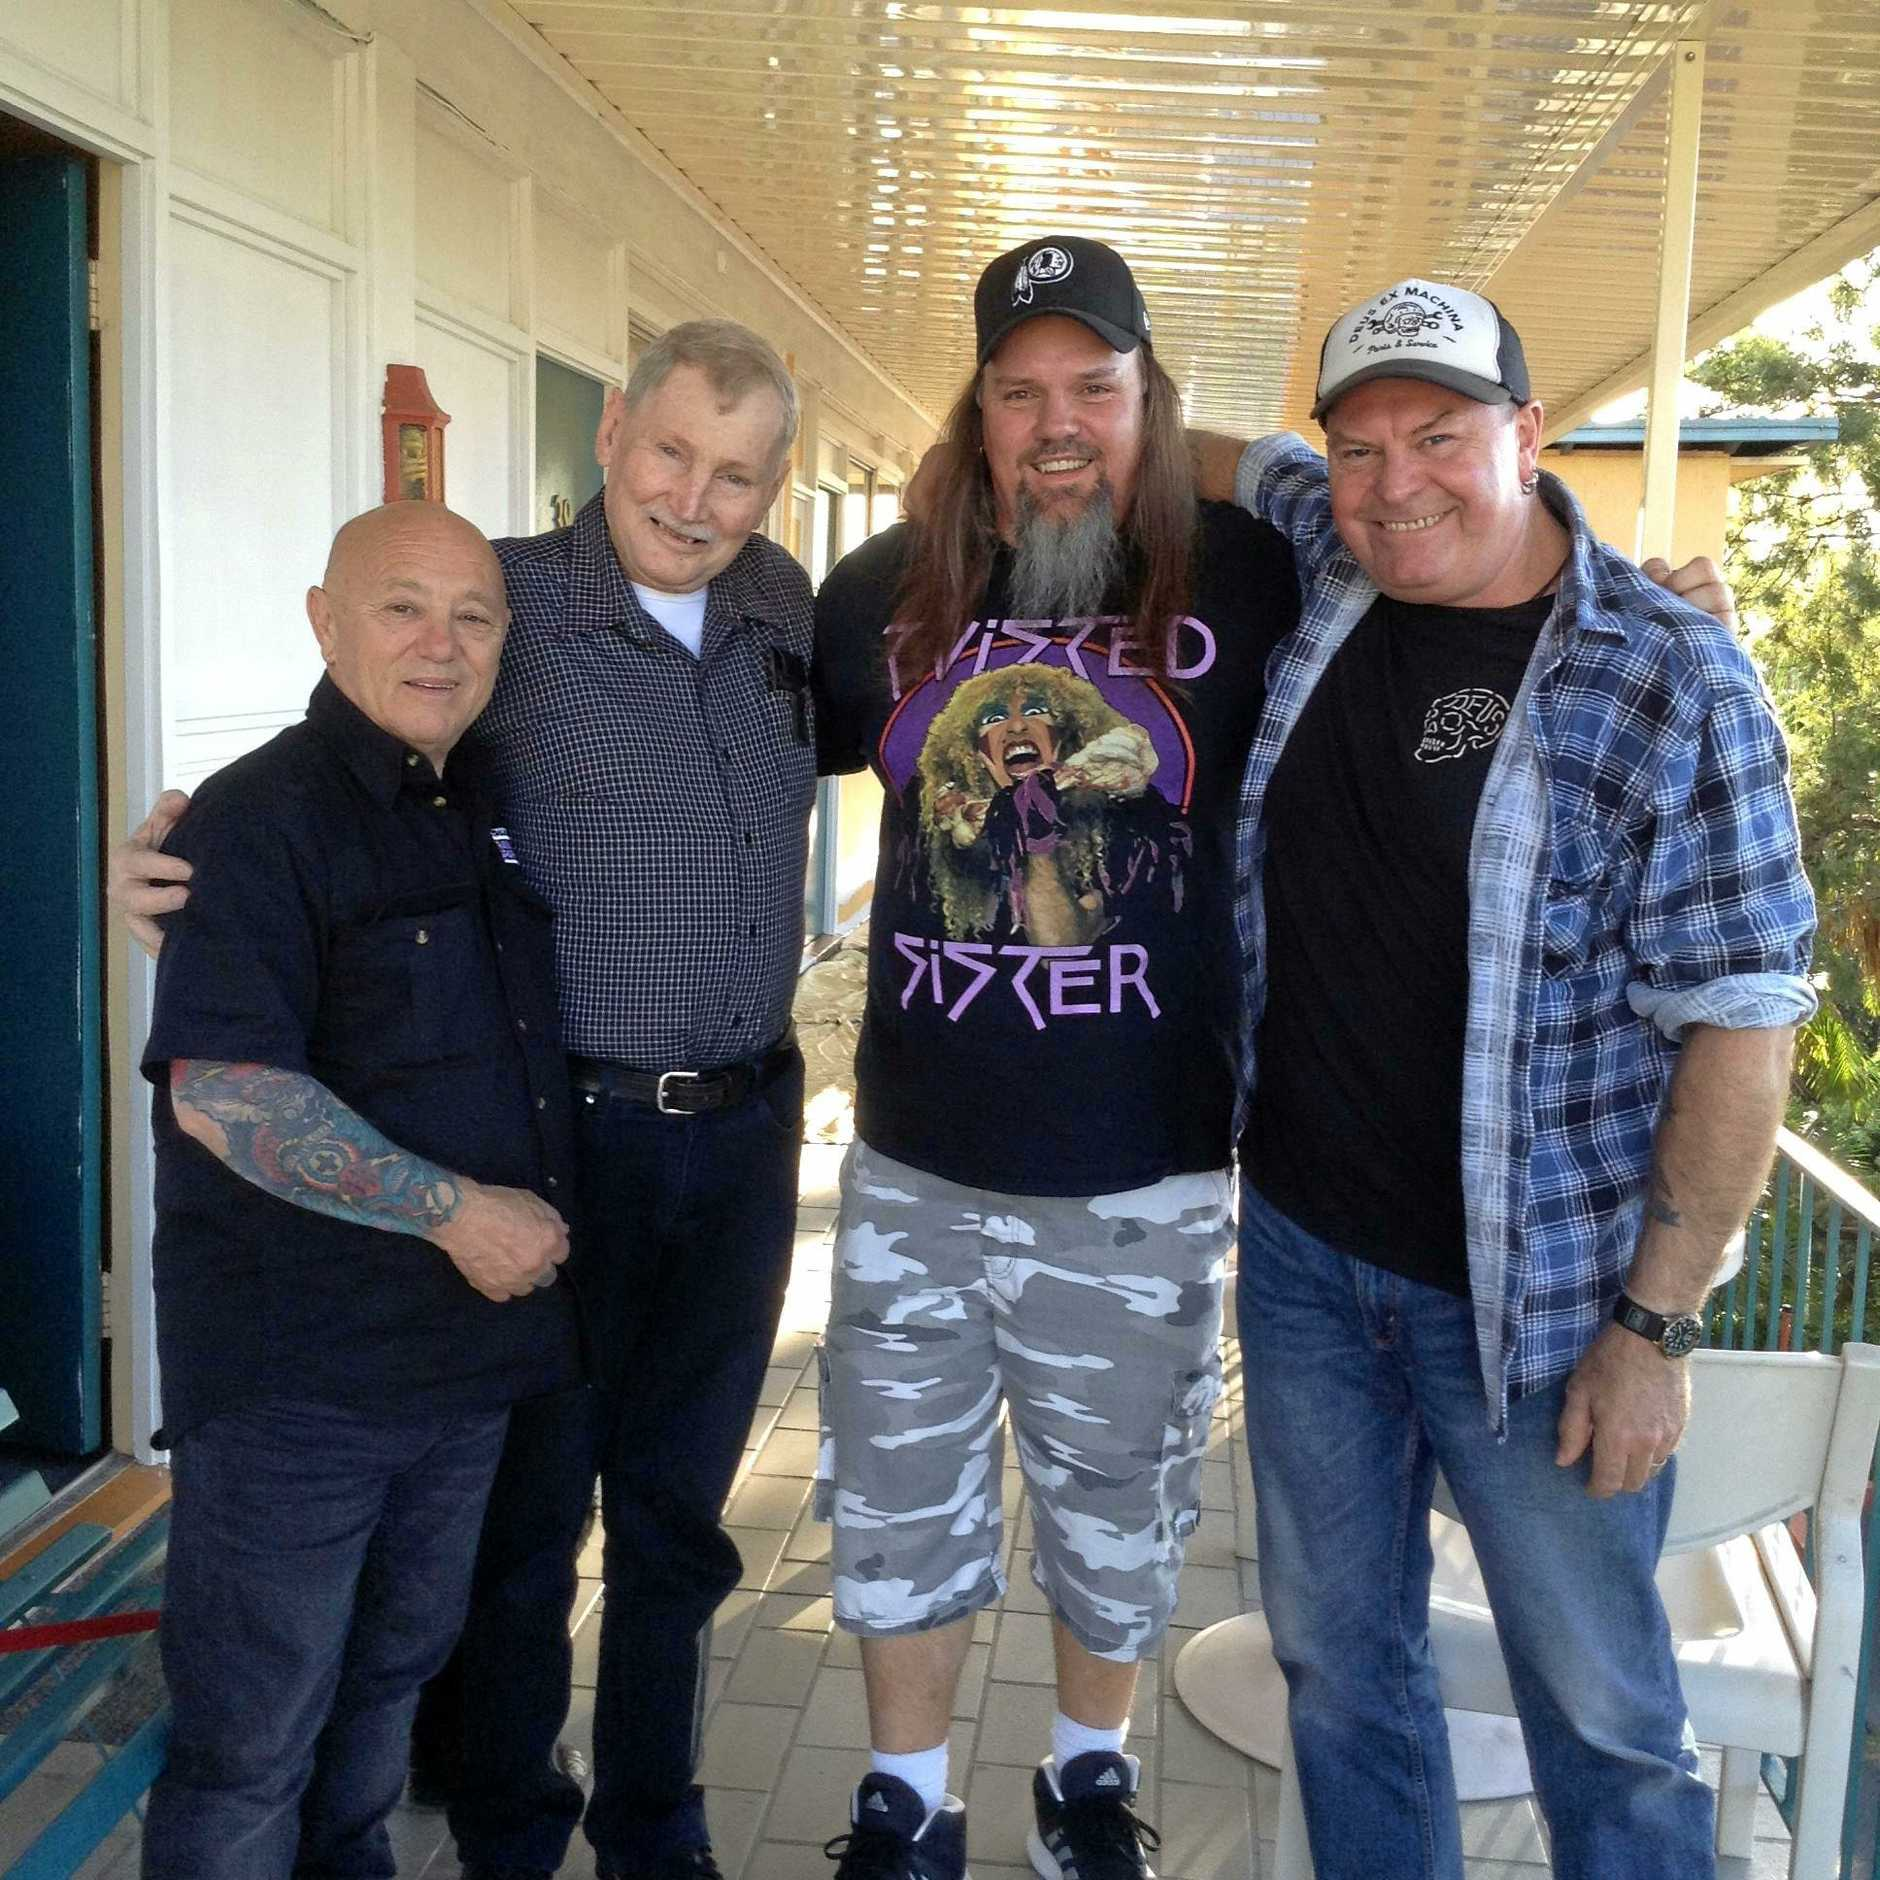 Five weeks ago, Angry Anderson with Denis, his son Jamie Cook and Dai Pritchard.